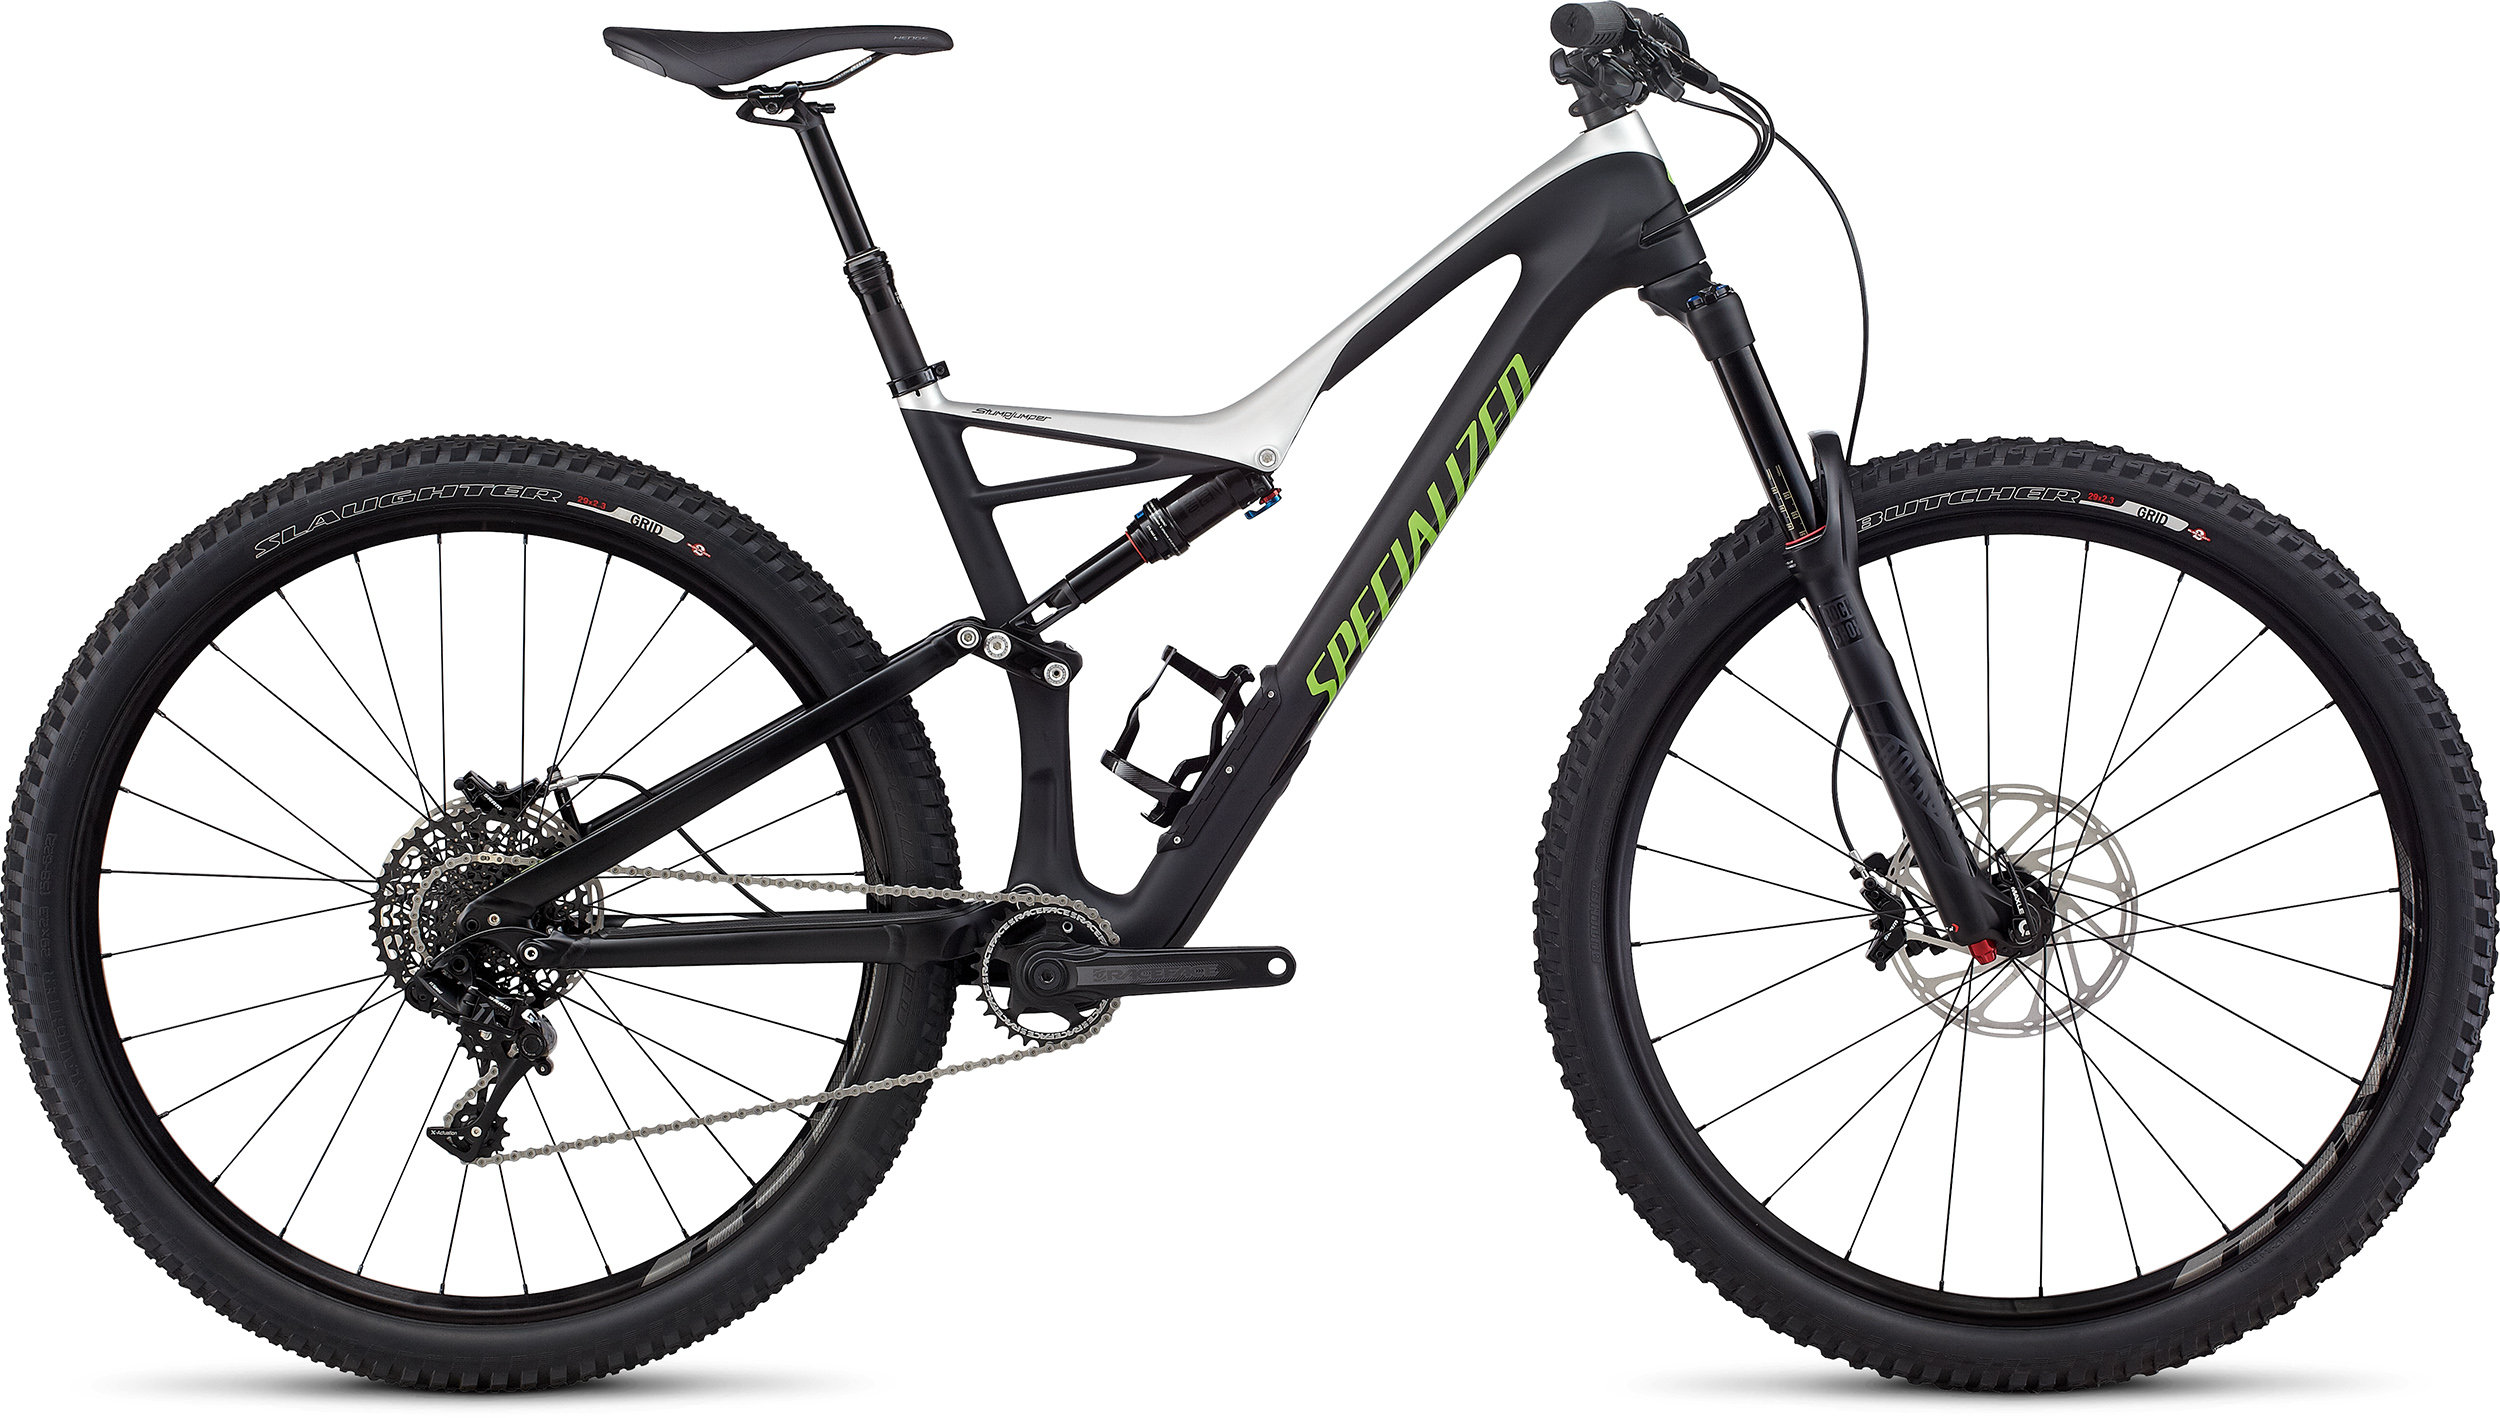 SPECIALIZED SJ FSR COMP CARBON 29 TARBLK/LTSIL/MONGRN L - Bike Zone